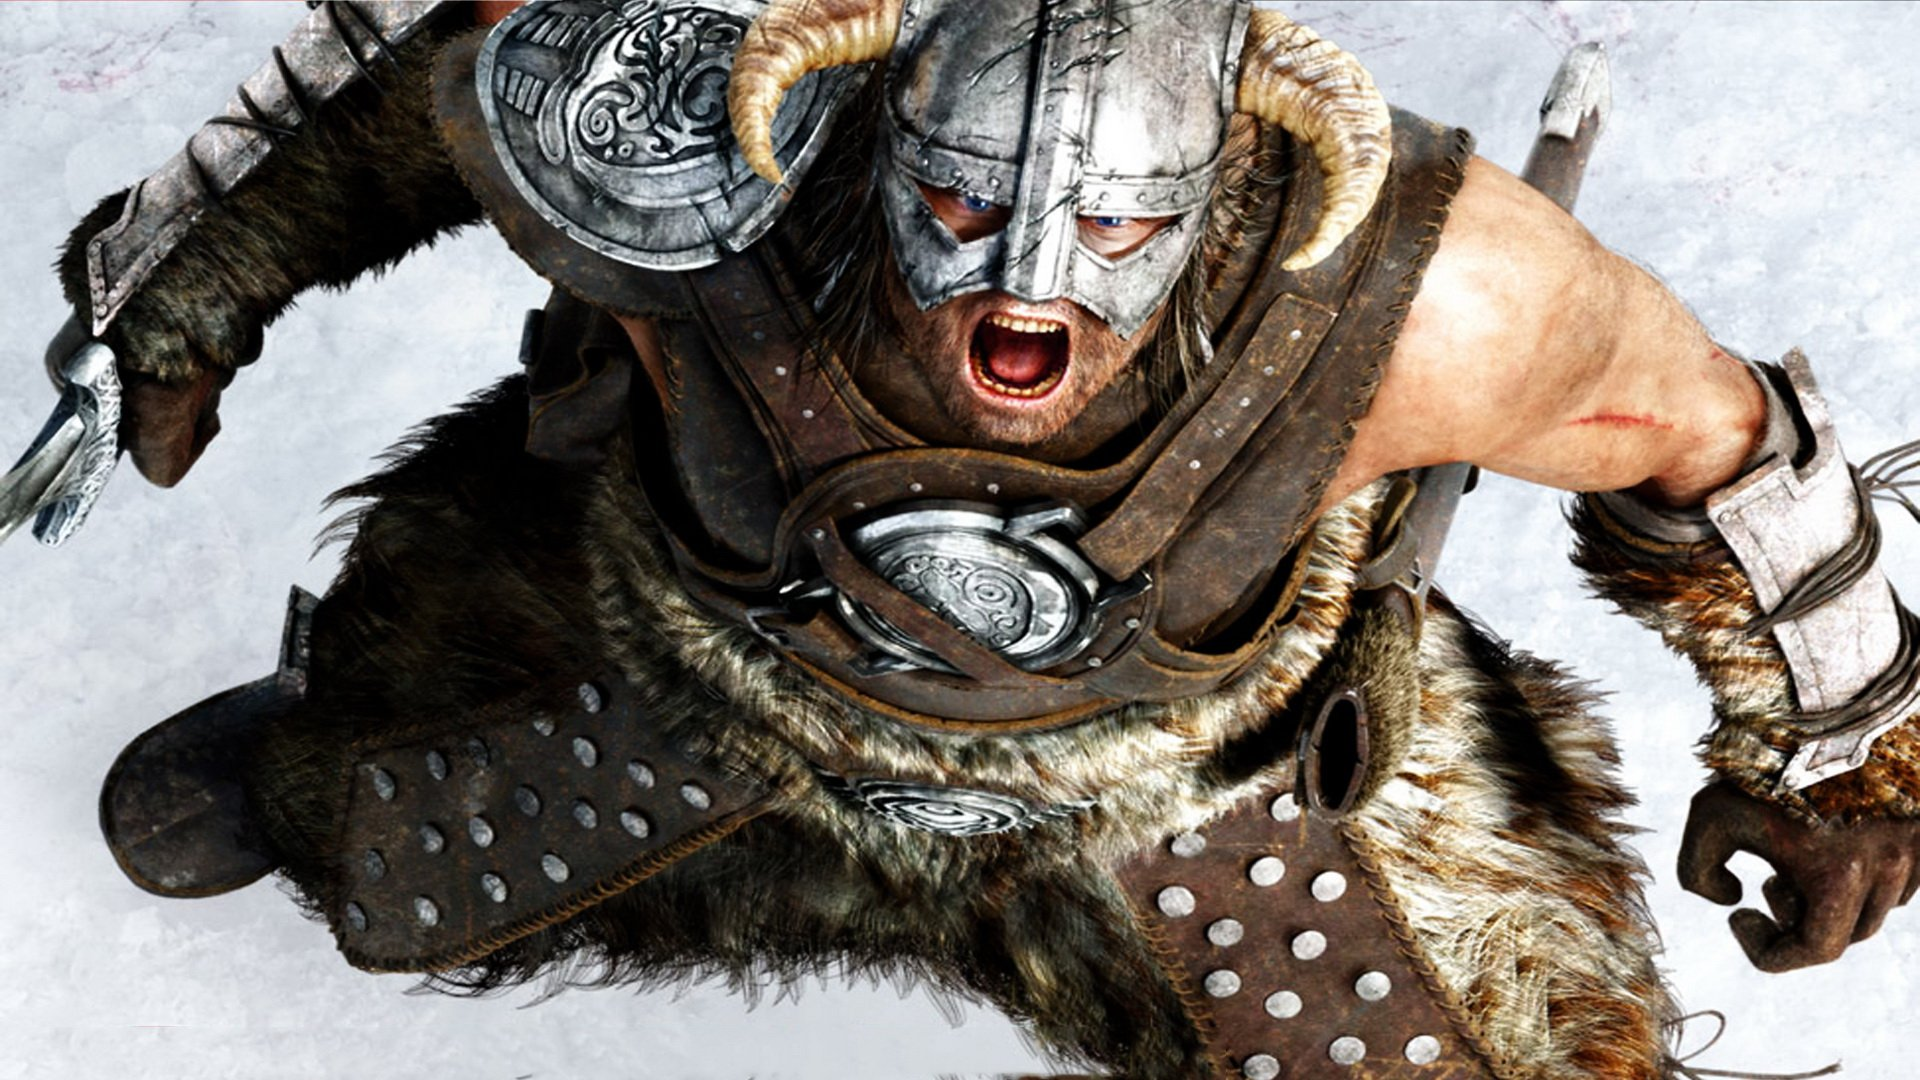 Skyrim Armor The Best Armor In Skyrim To Craft And Wear Gamesradar Purchase crowns for your platform. skyrim armor the best armor in skyrim